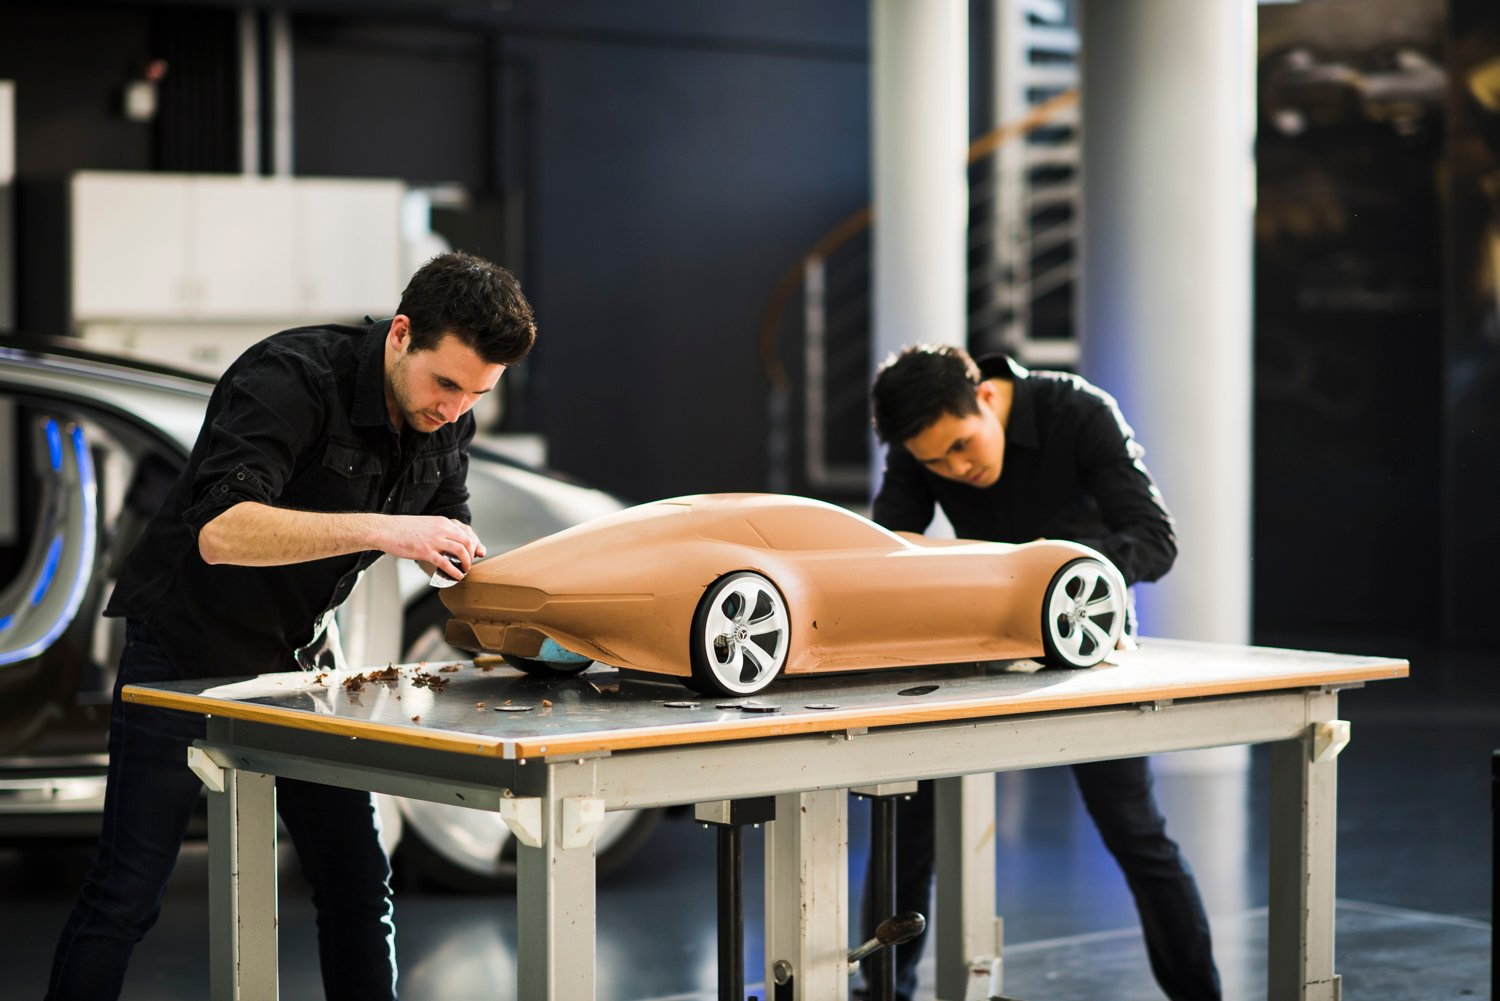 Two designers are working on a 1:4 clay model of a Mercedes-Benz.